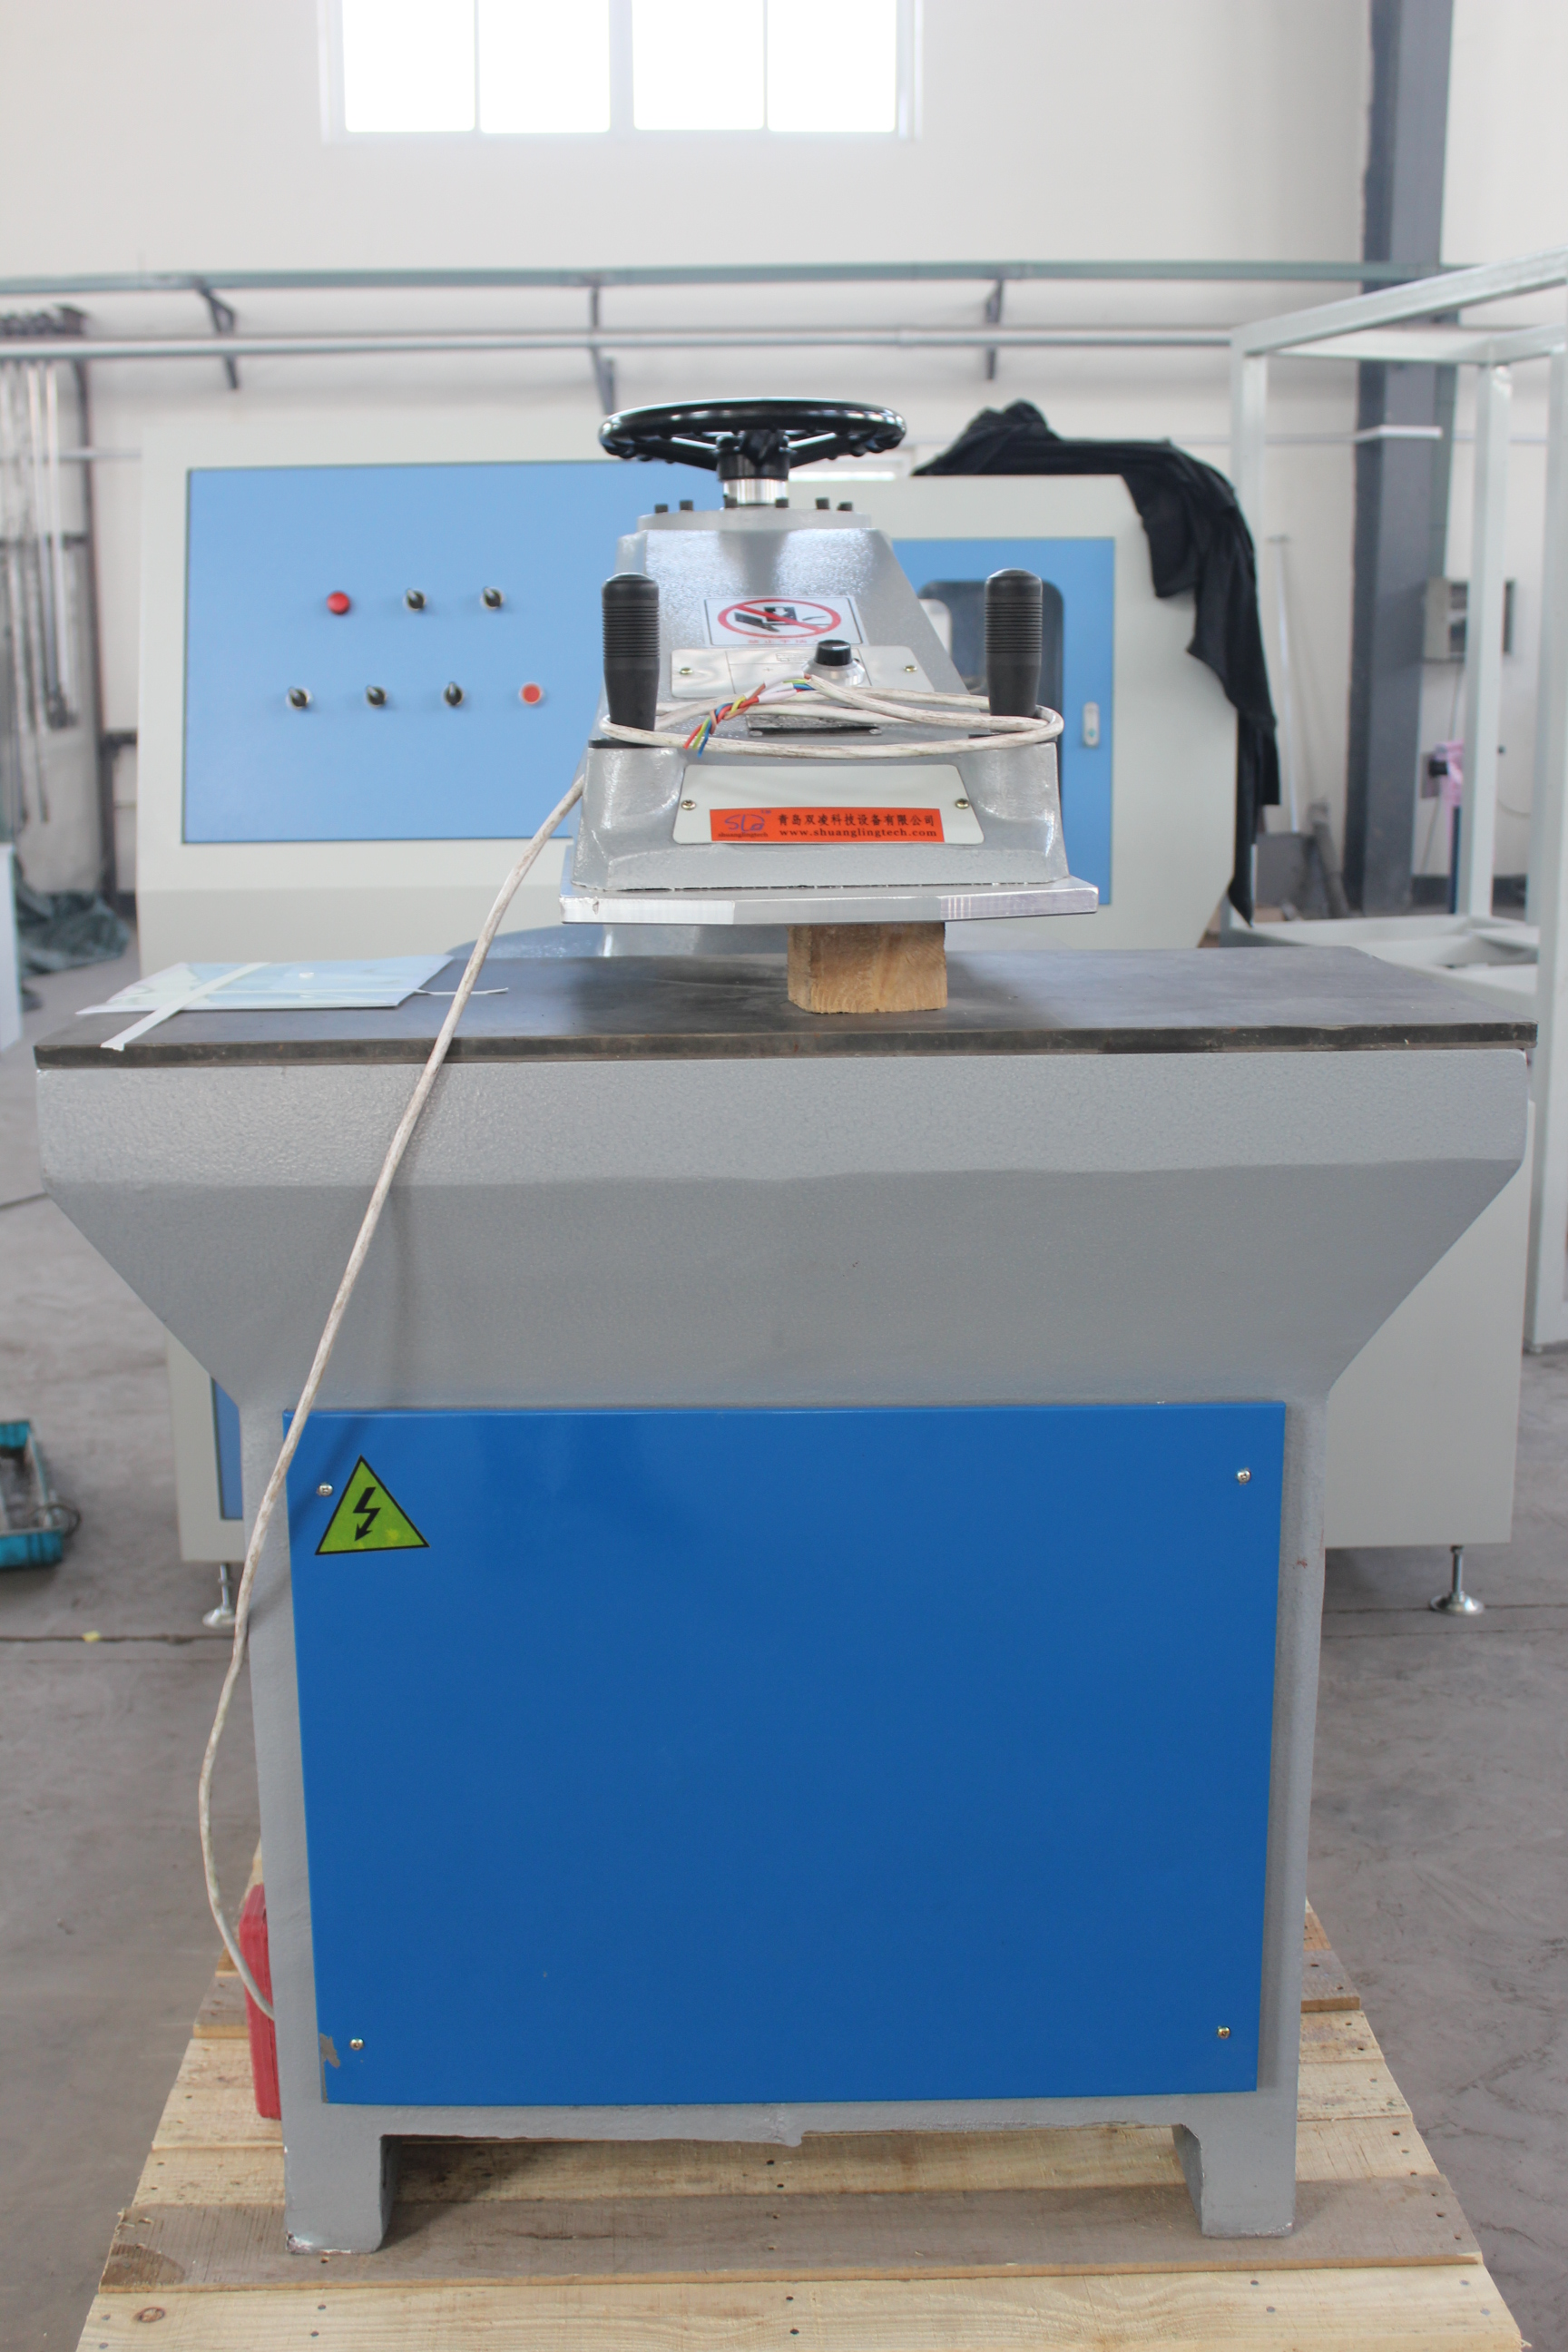 Hydraulic punching machinery for specimen